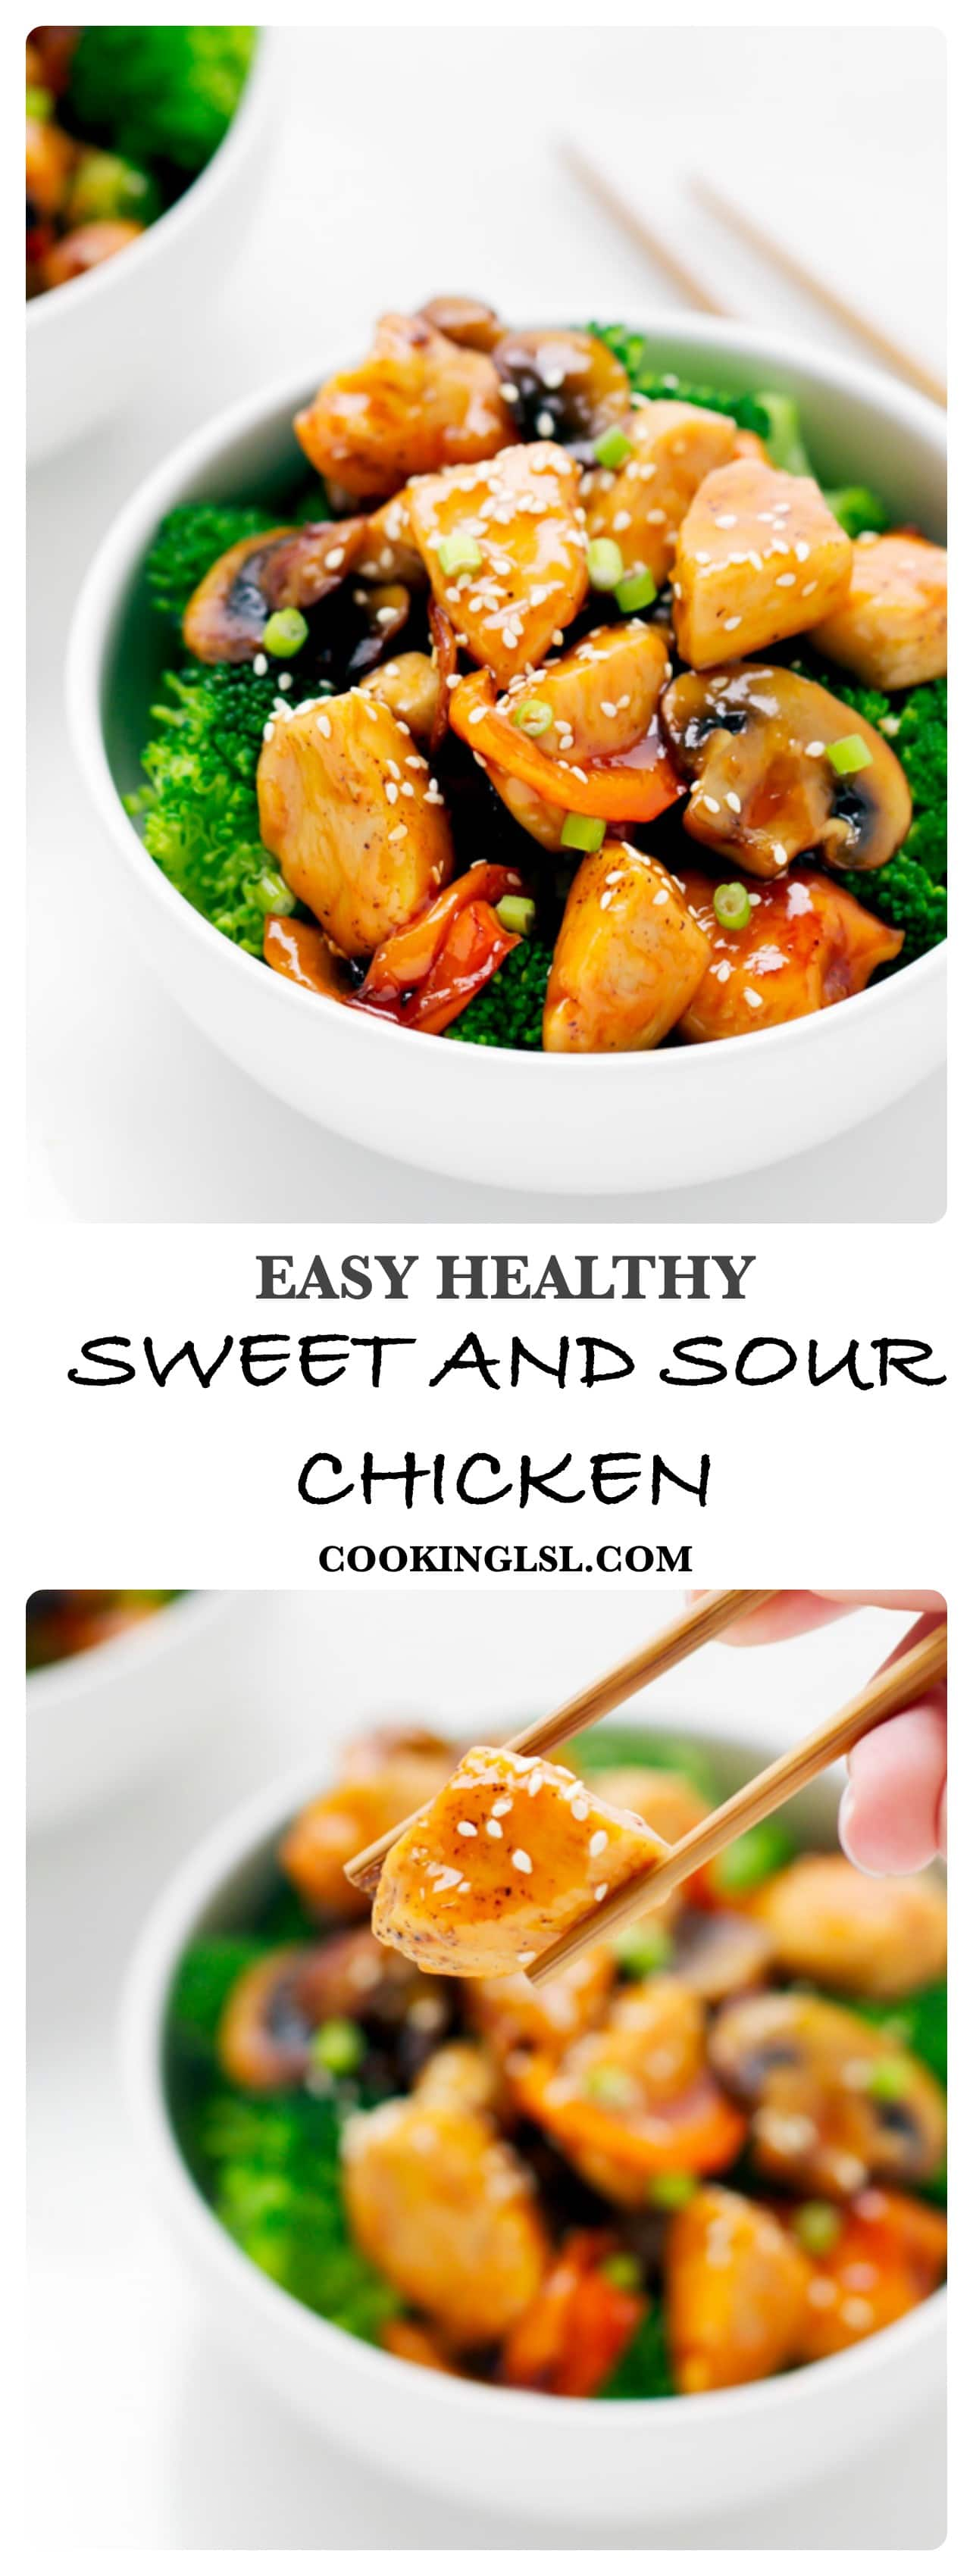 easy-non-authentic-sweet-and-sour-chicken-recipe